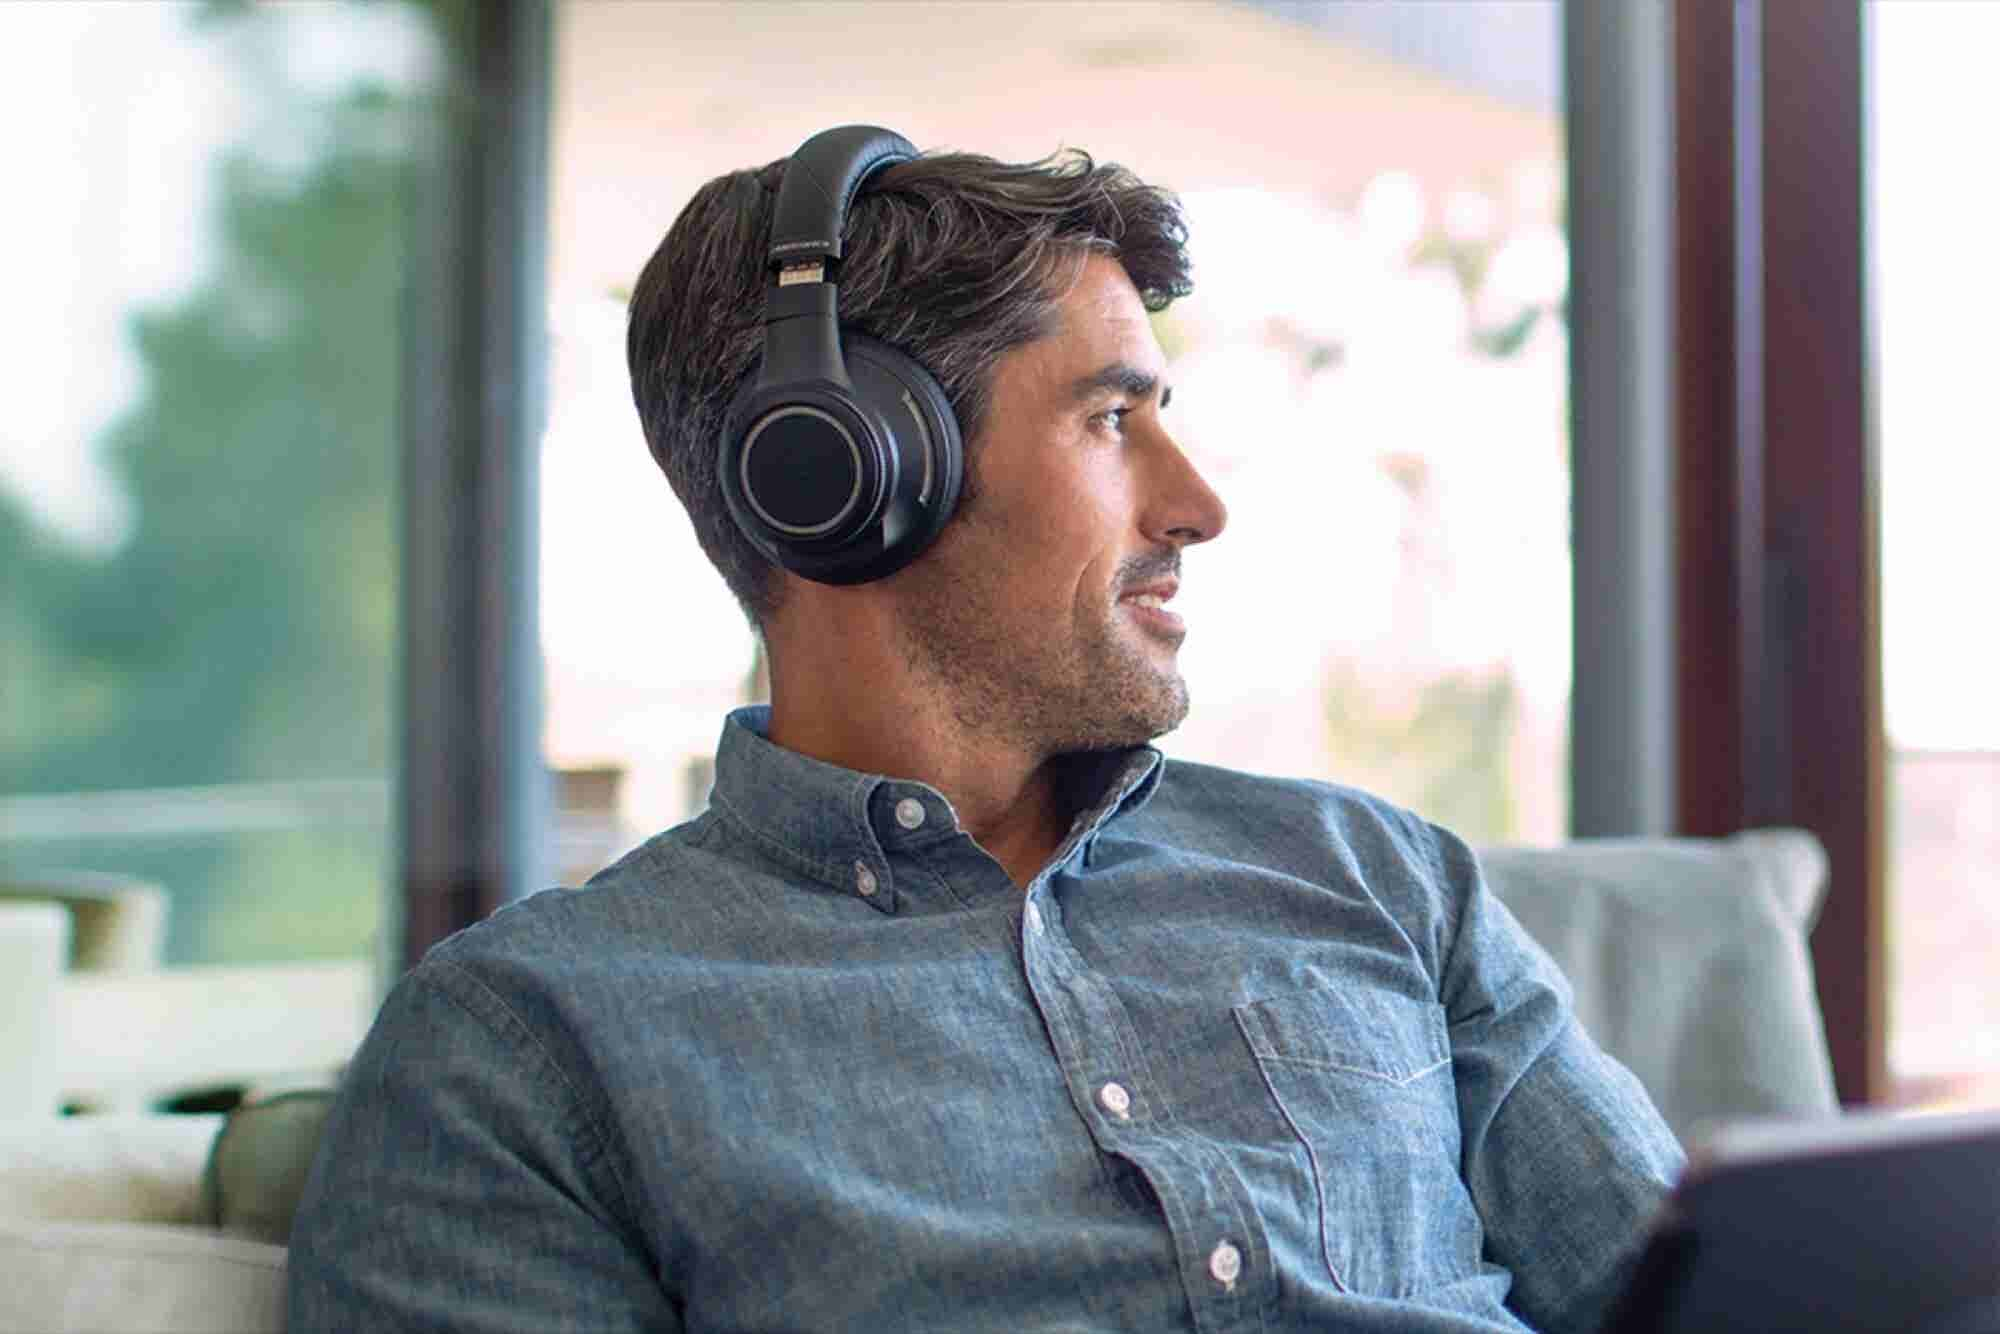 8 Great Gadget Gifts for Entrepreneurs